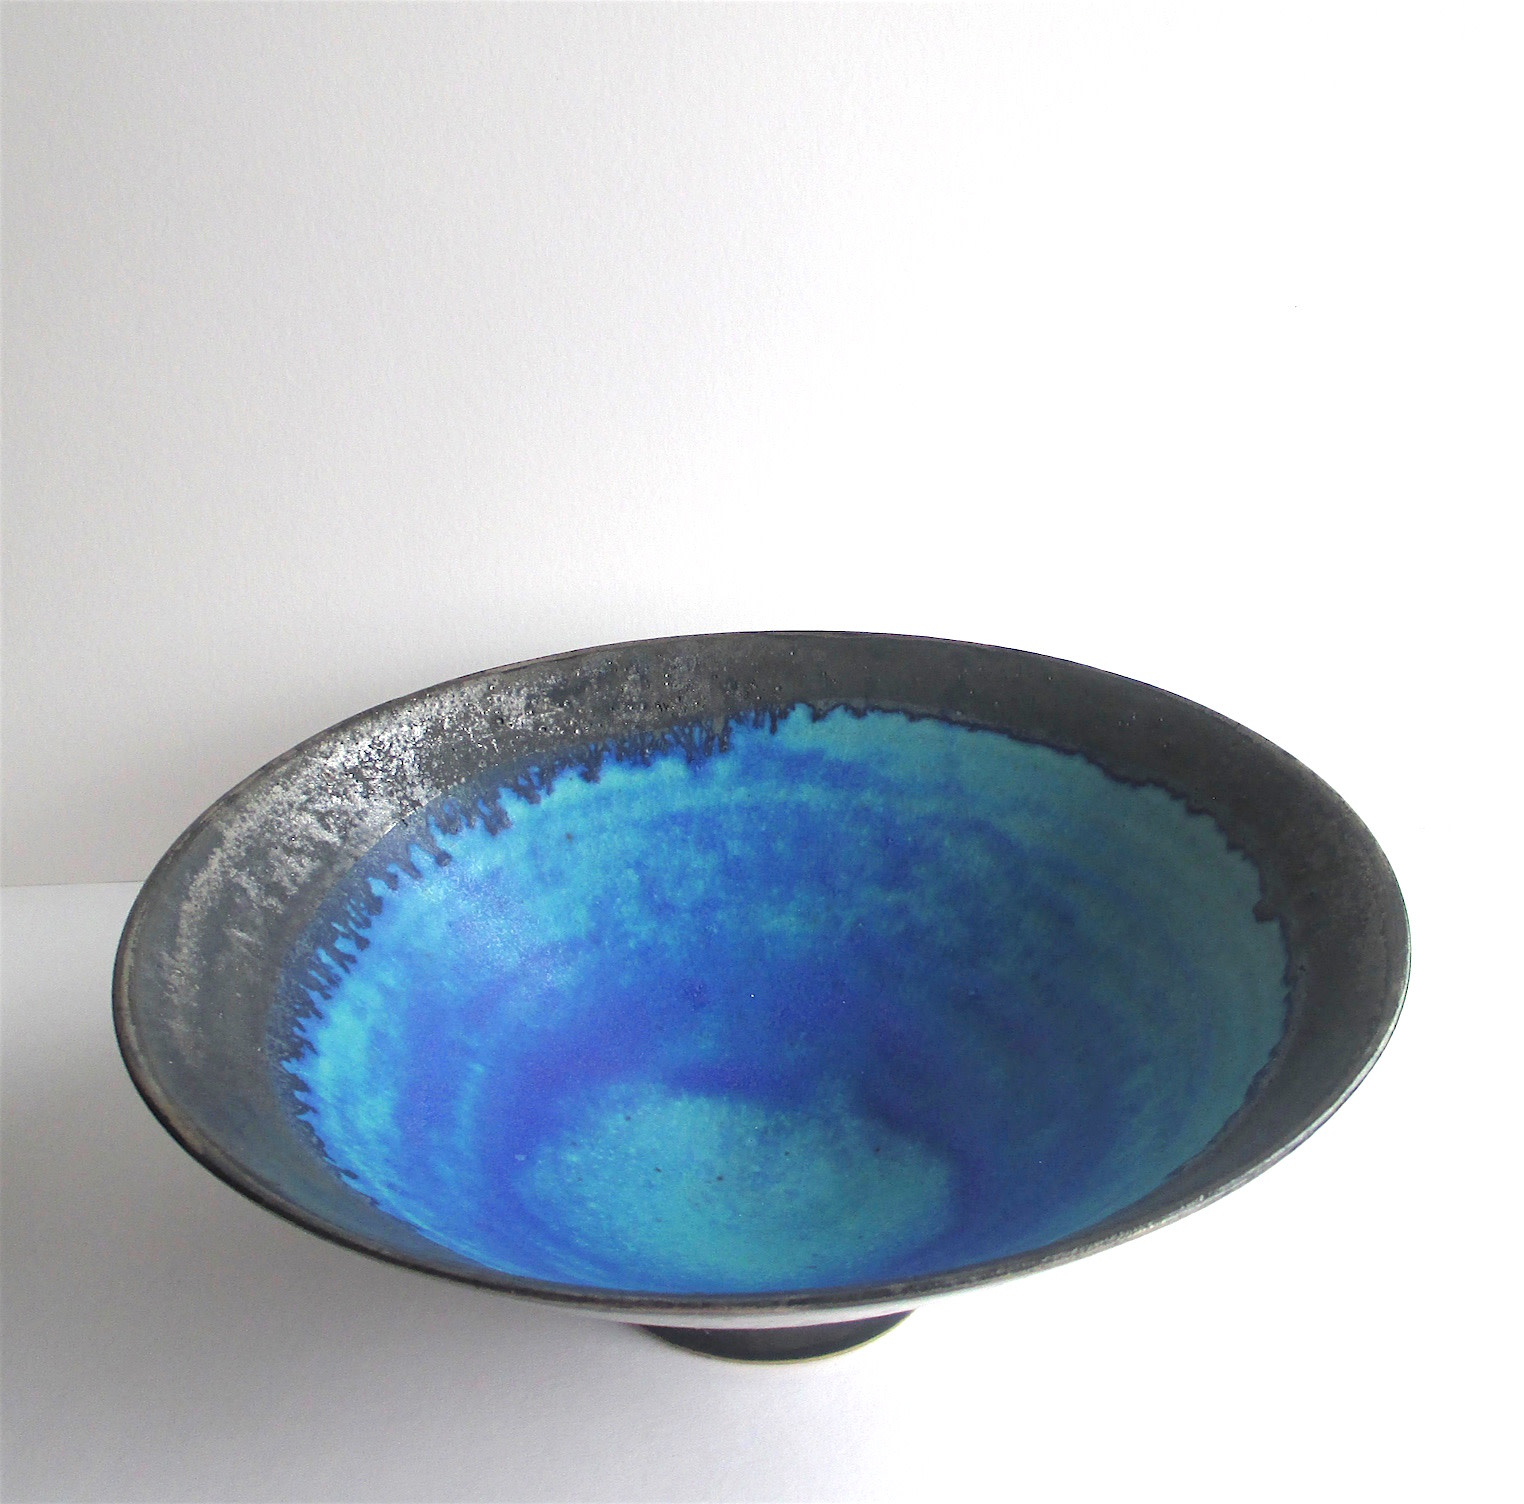 "<span class=""link fancybox-details-link""><a href=""/artists/44-sarah-perry/works/6974-sarah-perry-silver-lustred-blue-pool-bowl-2020/"">View Detail Page</a></span><div class=""artist""><strong>Sarah Perry</strong></div> <div class=""title""><em>Silver lustred Blue Pool Bowl</em>, 2020</div> <div class=""signed_and_dated"">labelled on the bottom</div> <div class=""medium"">Stoneware</div> <div class=""dimensions"">h. 10 x 26 cm </div><div class=""price"">£363.00</div><div class=""copyright_line"">Own Art: £ 36.30 x 10 Months, 0% APR</div>"